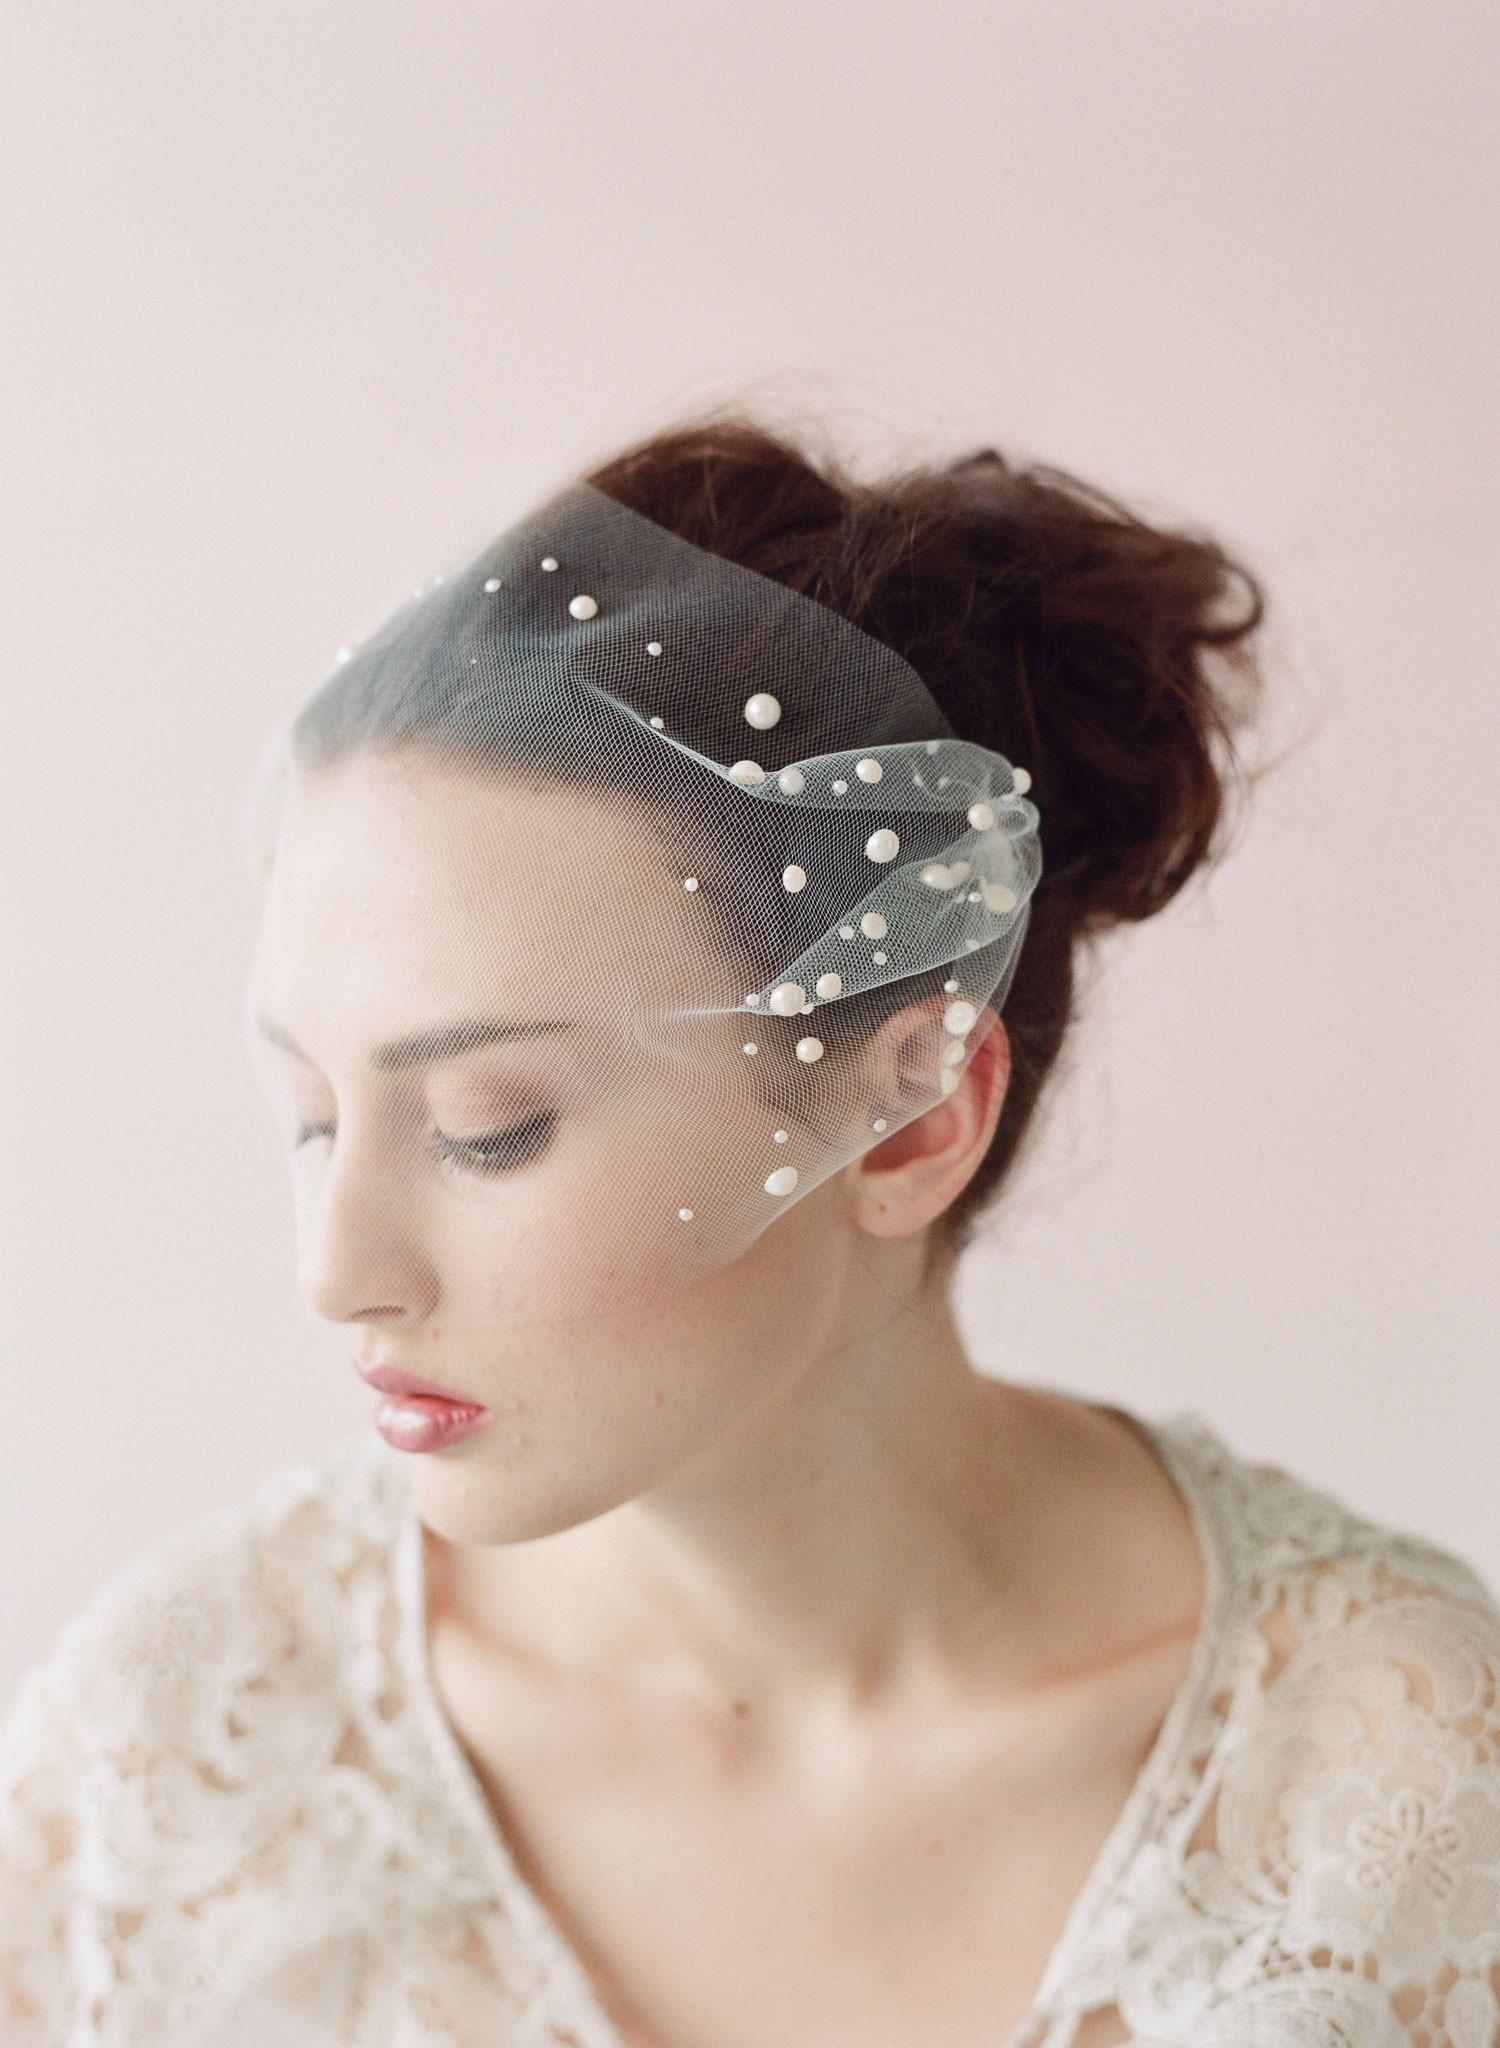 Illusion Short Wedding Veils Pearl Adorned Tulle Bandeau Veil Blusher Veils Hand Applied Pearl Beads Sewn To 2 Separate Gold Plated Veils